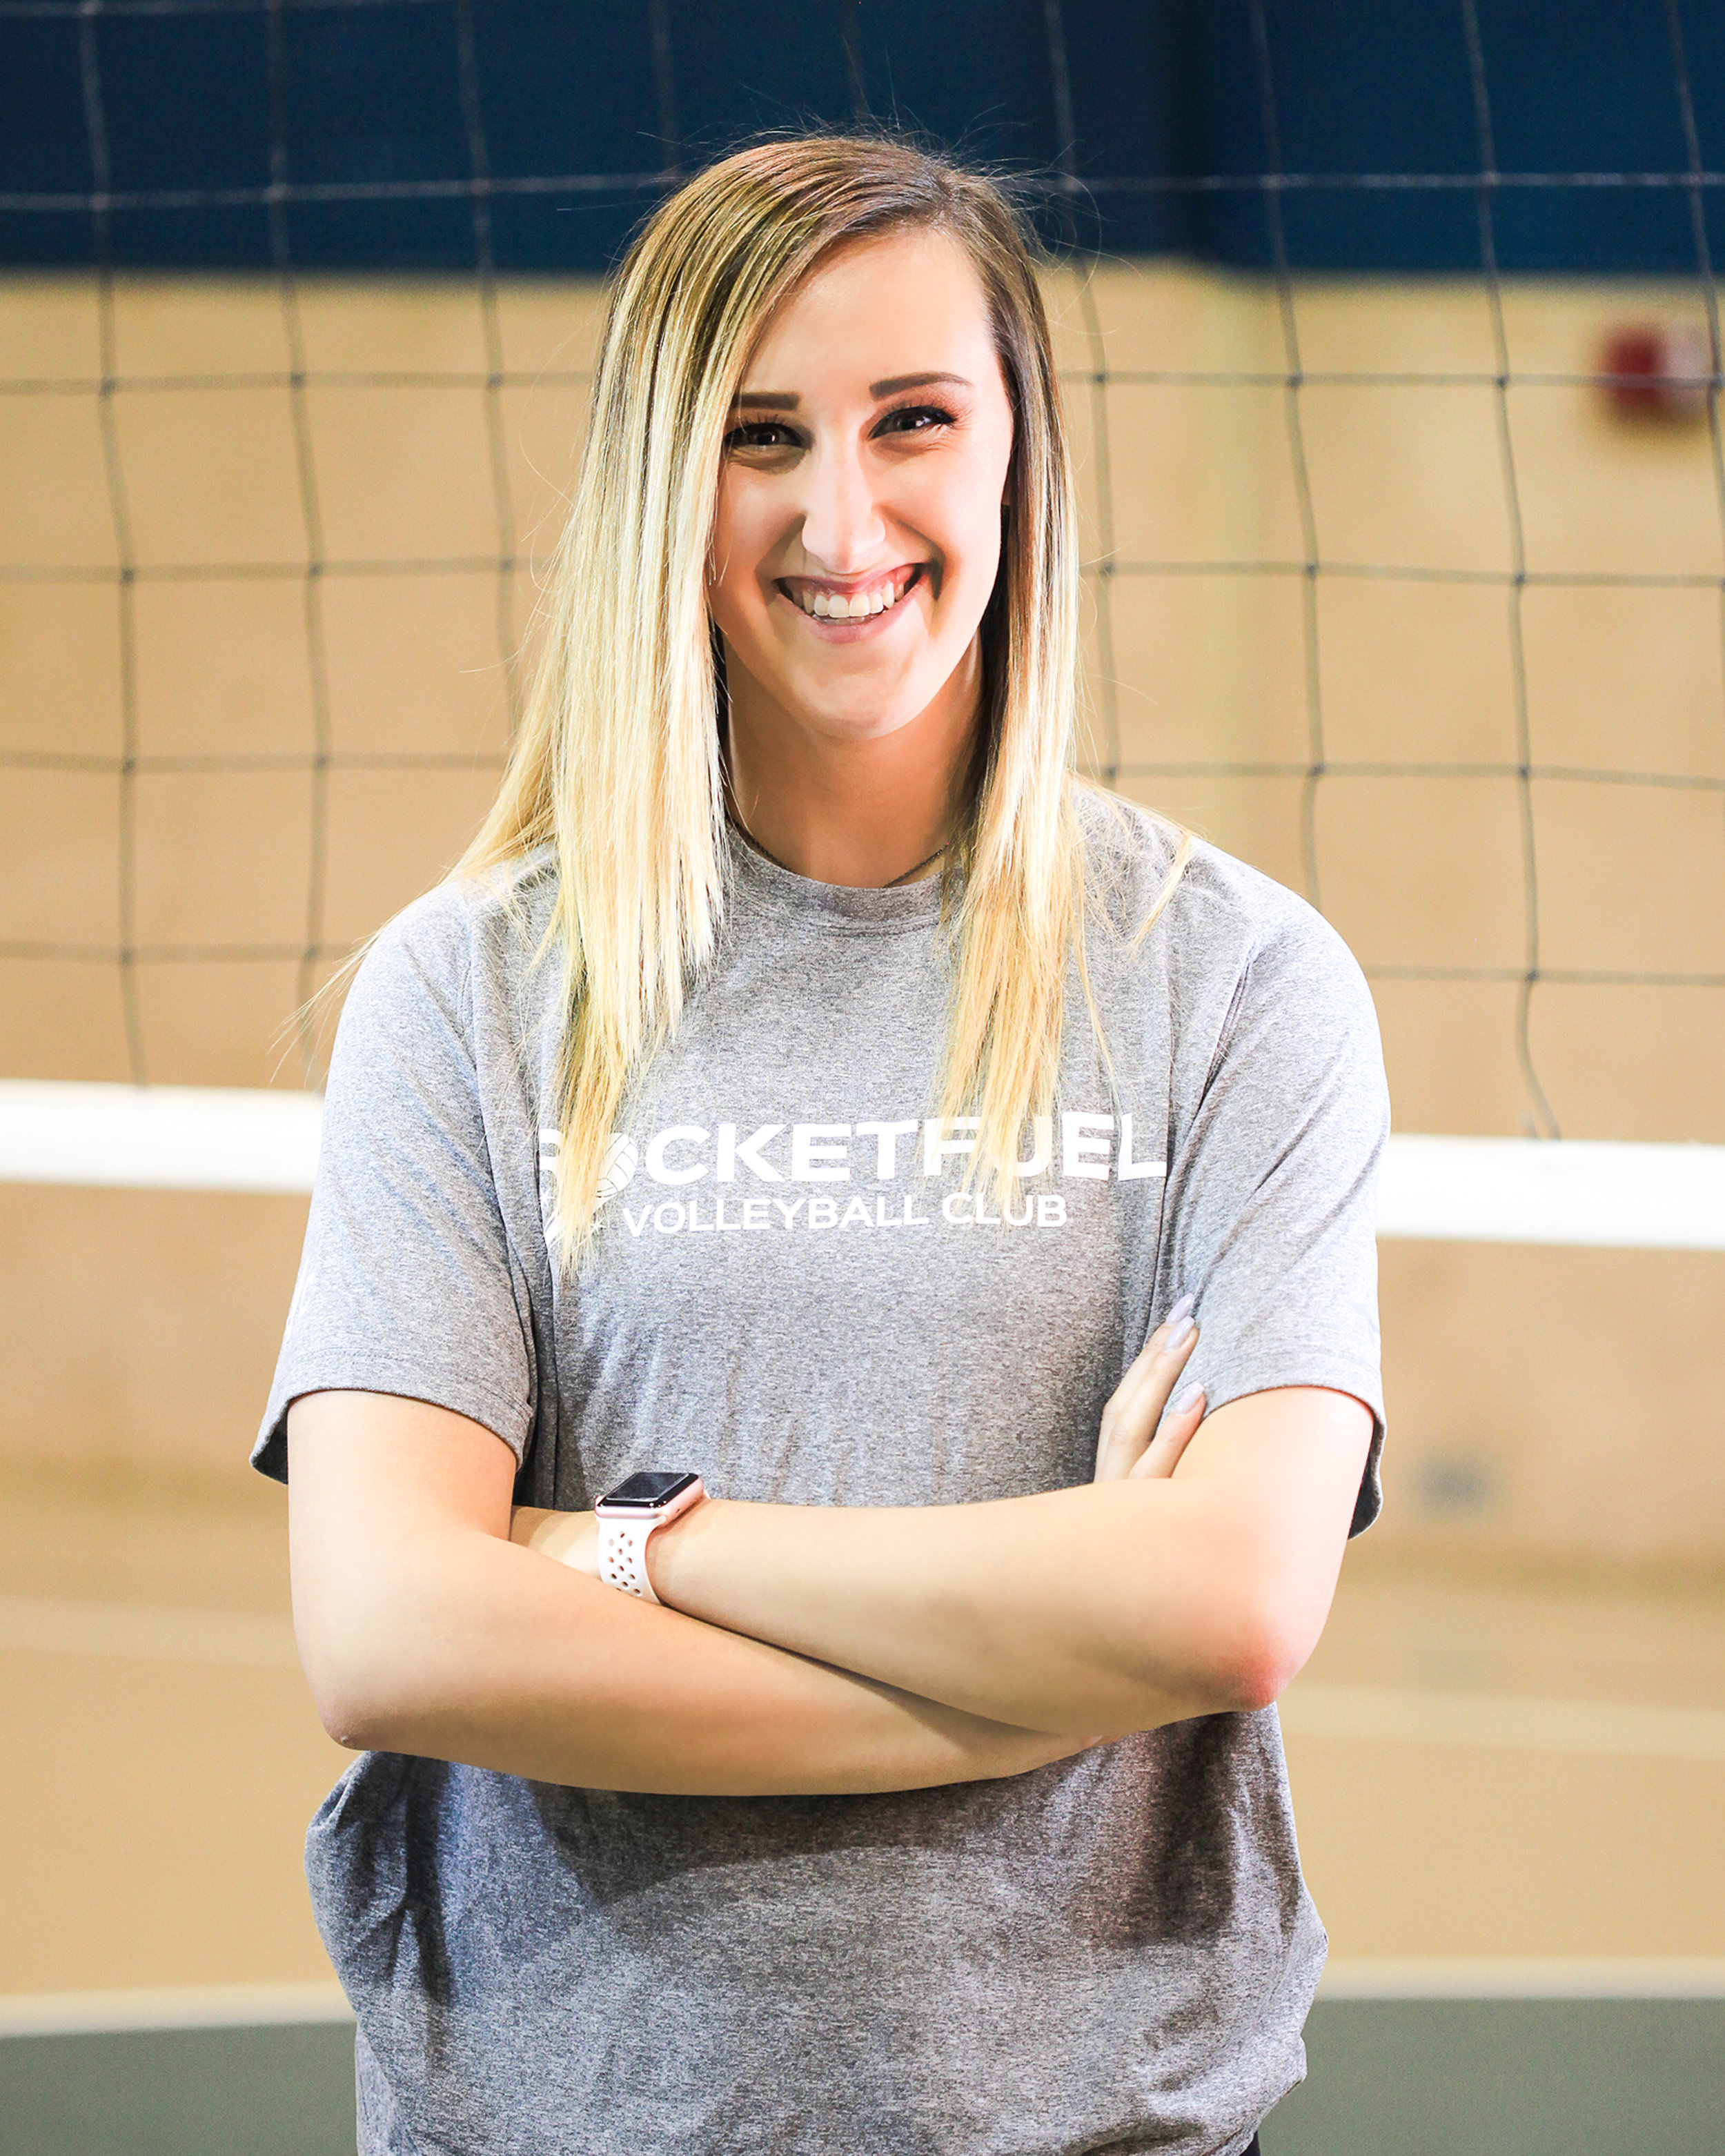 Makenzie Shaw - Meet Makenzie Shaw of our Shreveport RocketFuel Volleyball program. Shaw is a senior at Centenary College of Louisiana. She plays outside/right side hitter for Centenary, and she also sets. Makenzie is from Fort Worth, Texas. She has 12 years of experience playing volleyball. She played all four years of varsity in high school and played club for Nortex, Summit and Victory.